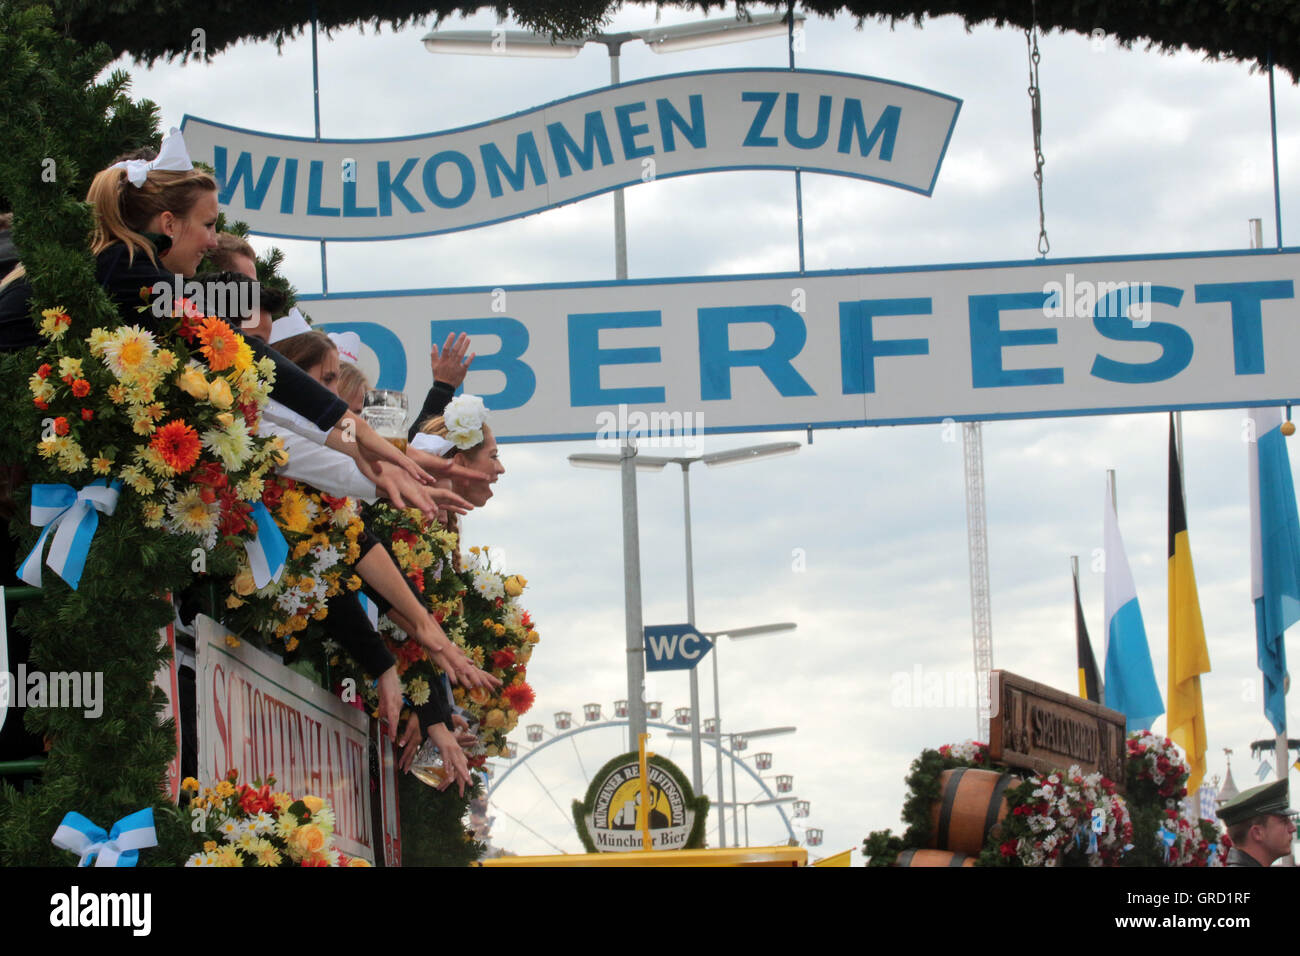 Sign Welcome To Munich Oktoberfest With Partying Guests On Horse Drawn Carriage - Stock Image